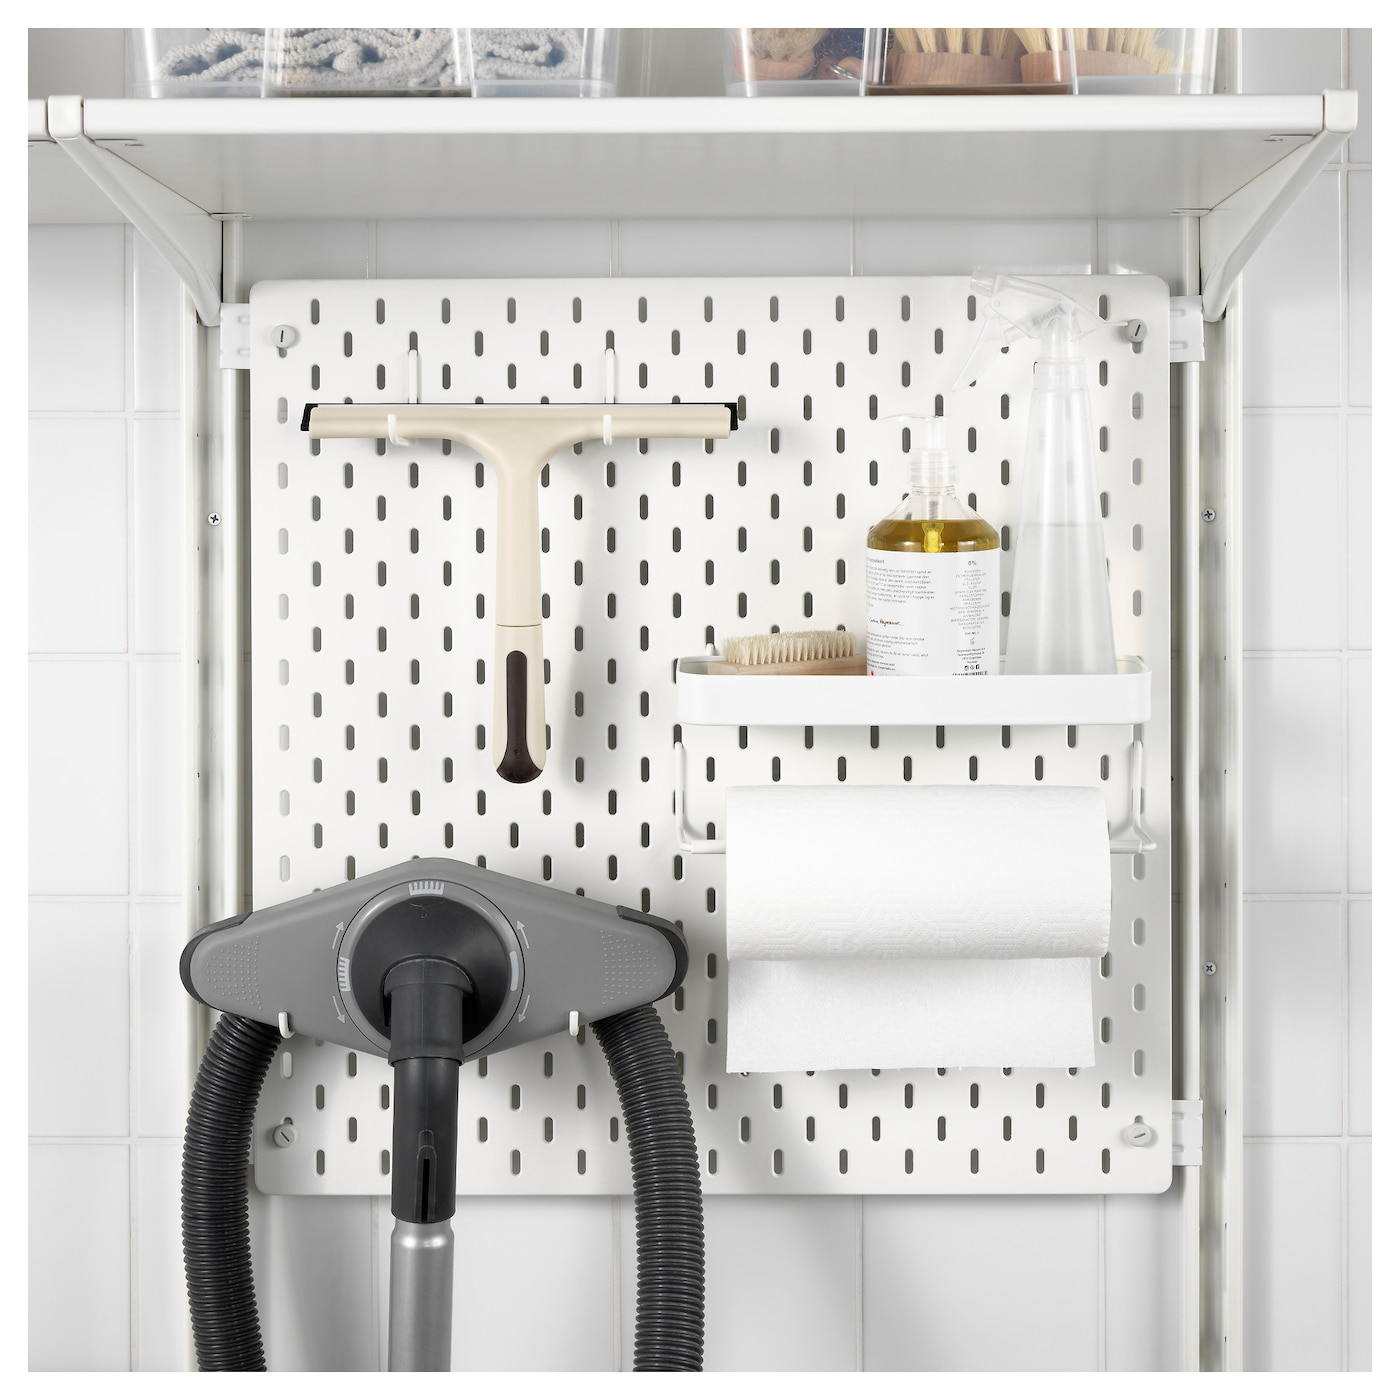 IKEA ALGOT/SKÅDIS wall upright/shelves Can also be used in bathrooms and other damp areas indoors.